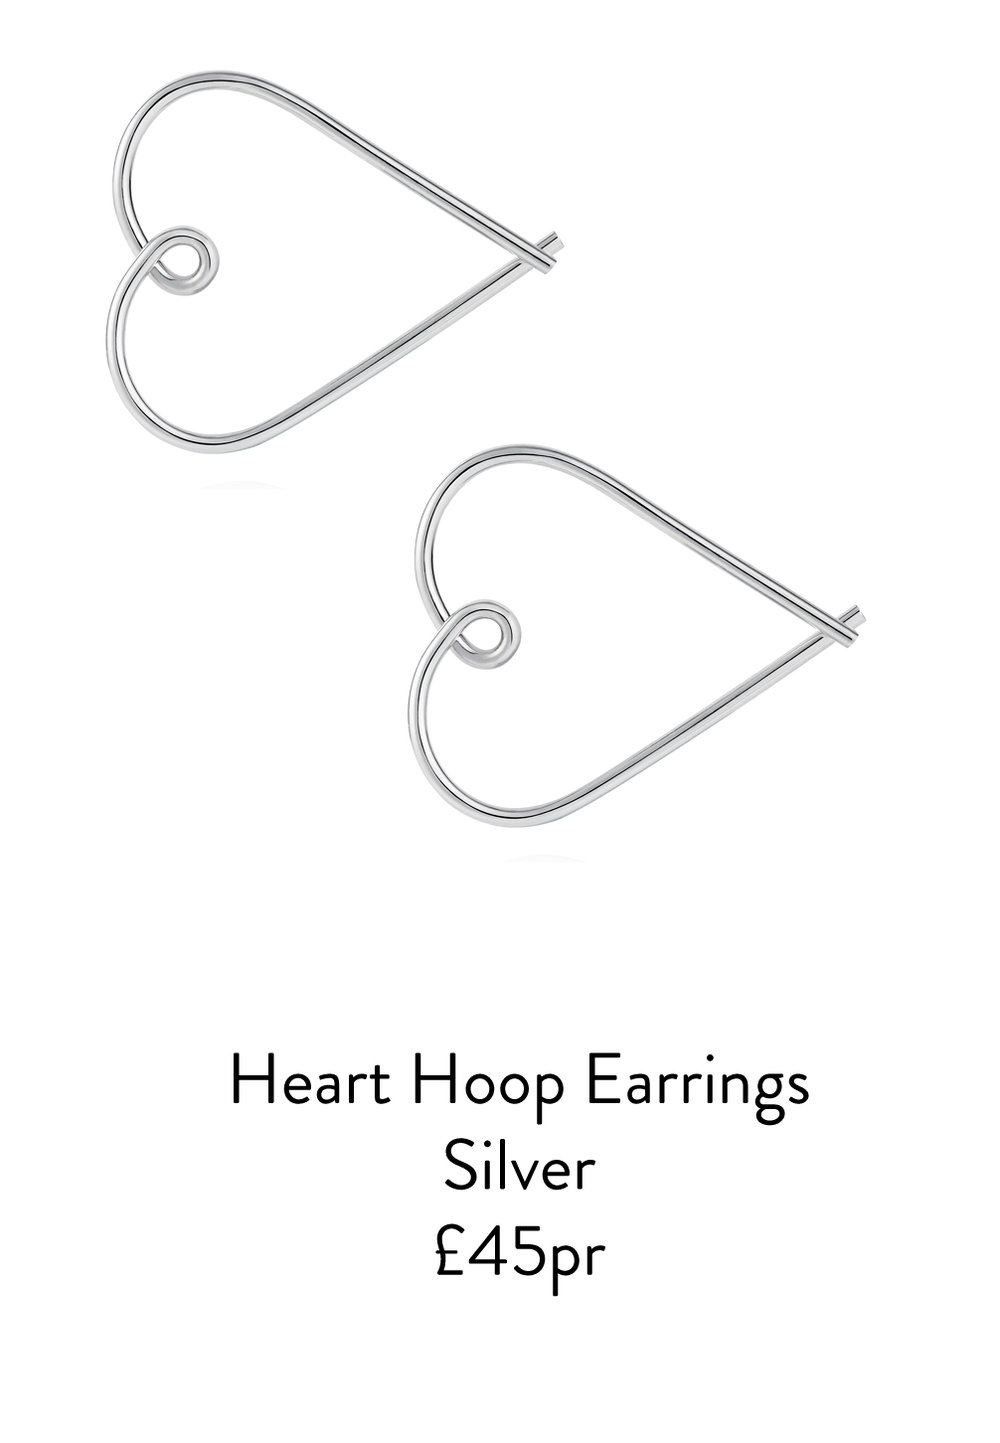 heart hoop earrings.jpg